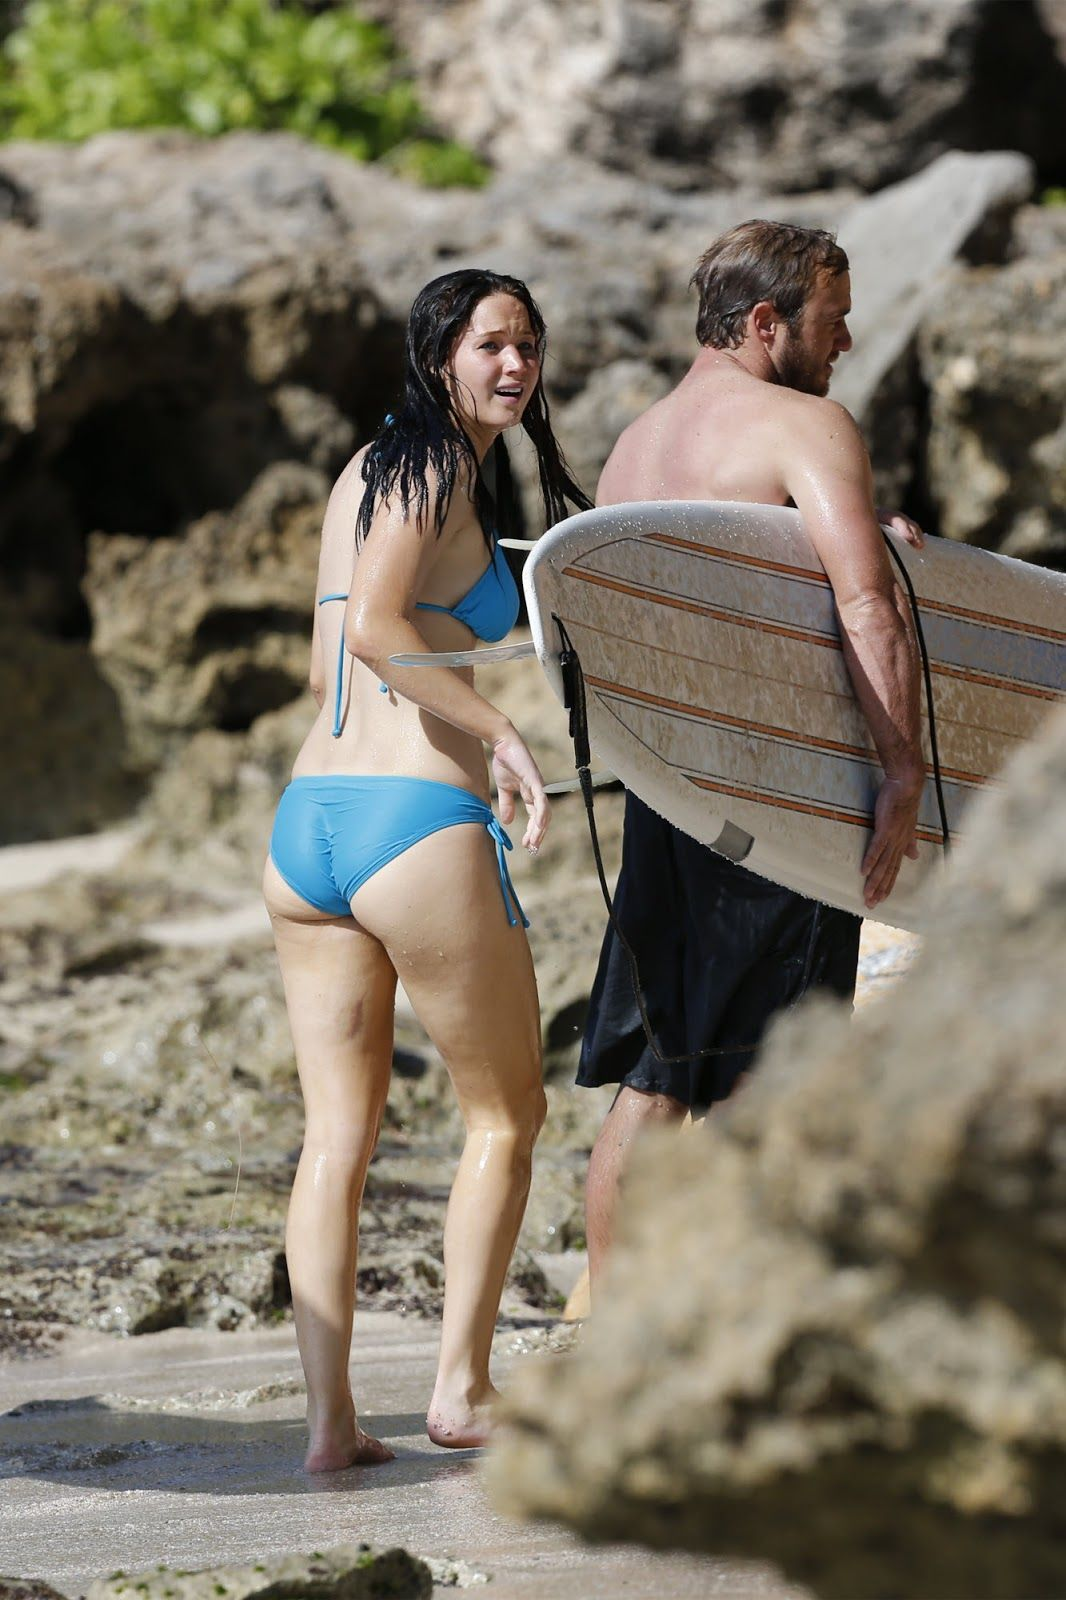 jennifer lawrence ass bikin | Jennifer Lawrence Bikini Candids & Ass Shot  at a Beach in Hawaii .